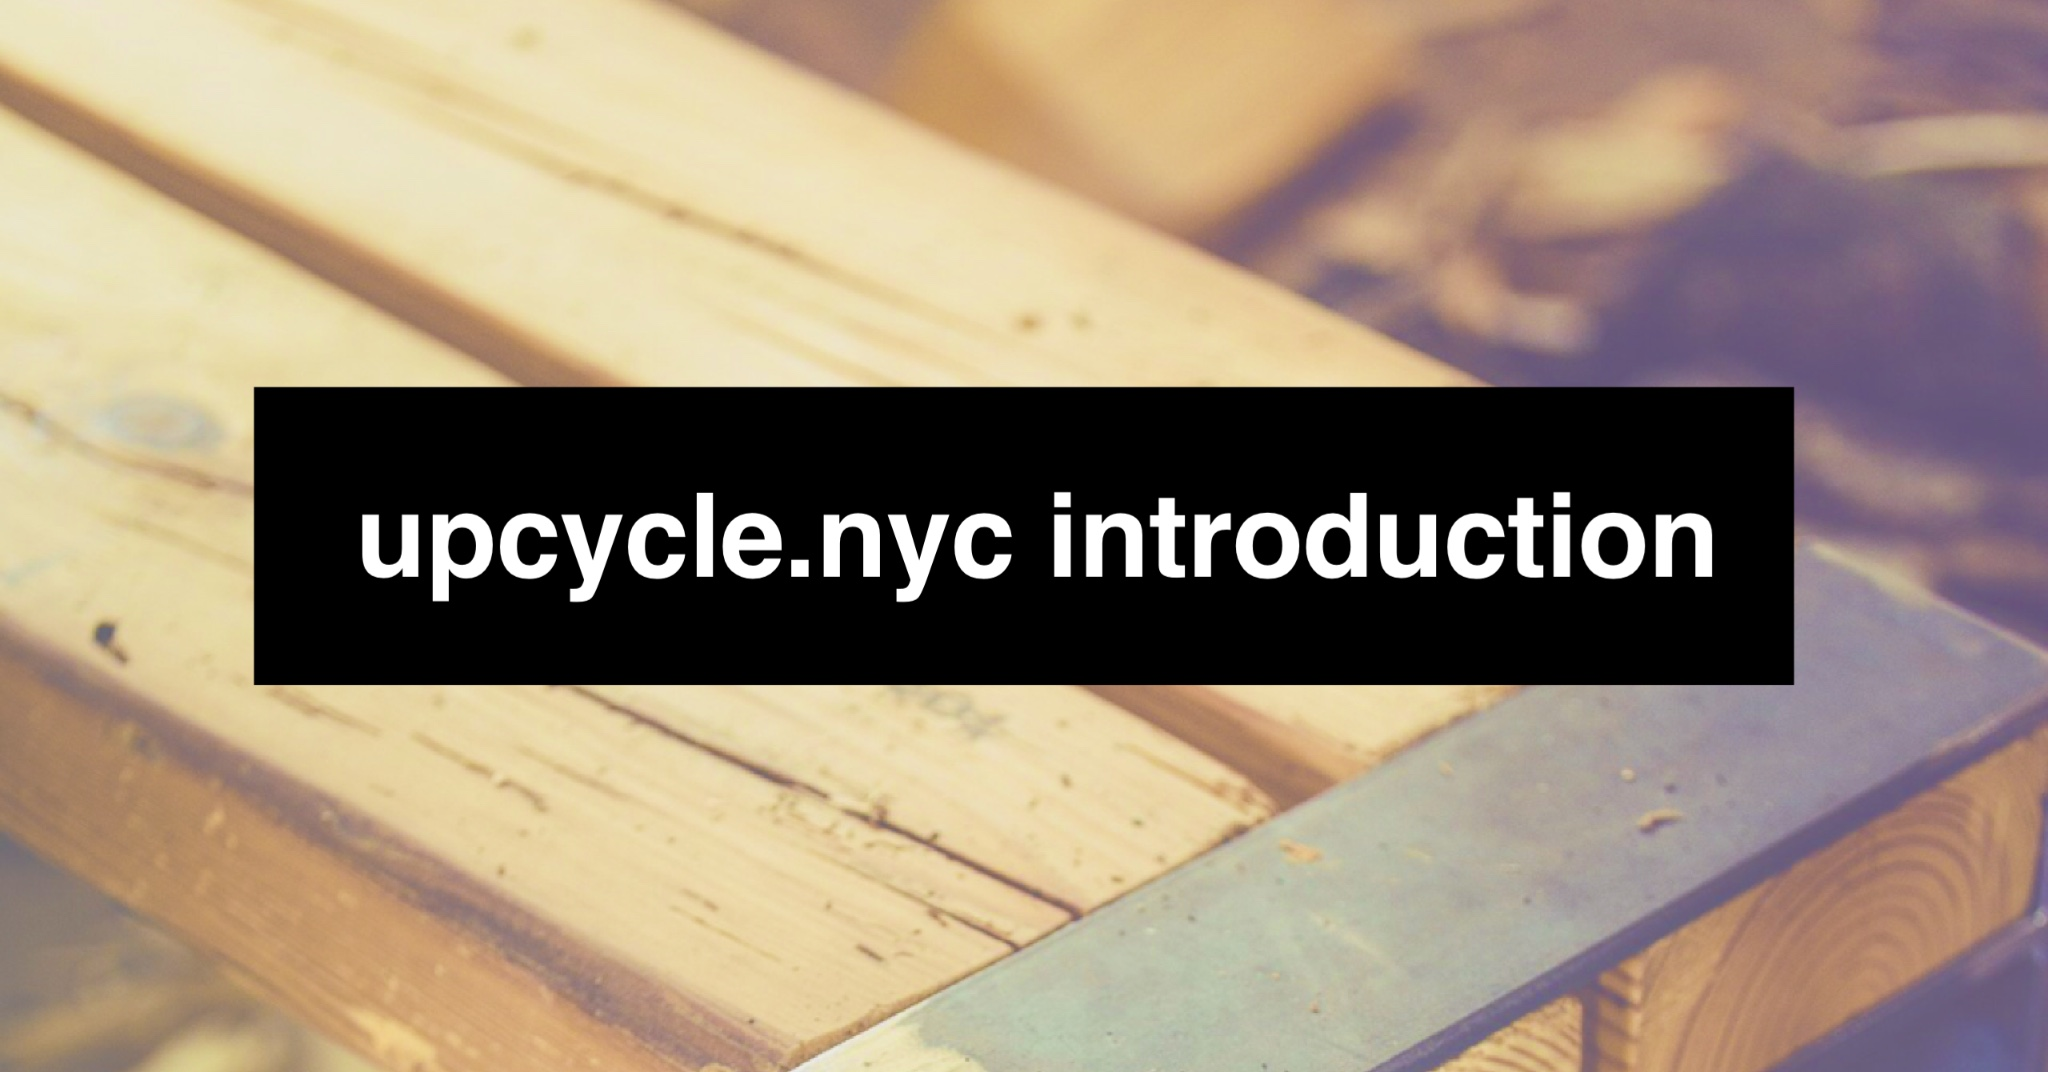 upcycle-nyc-introduction